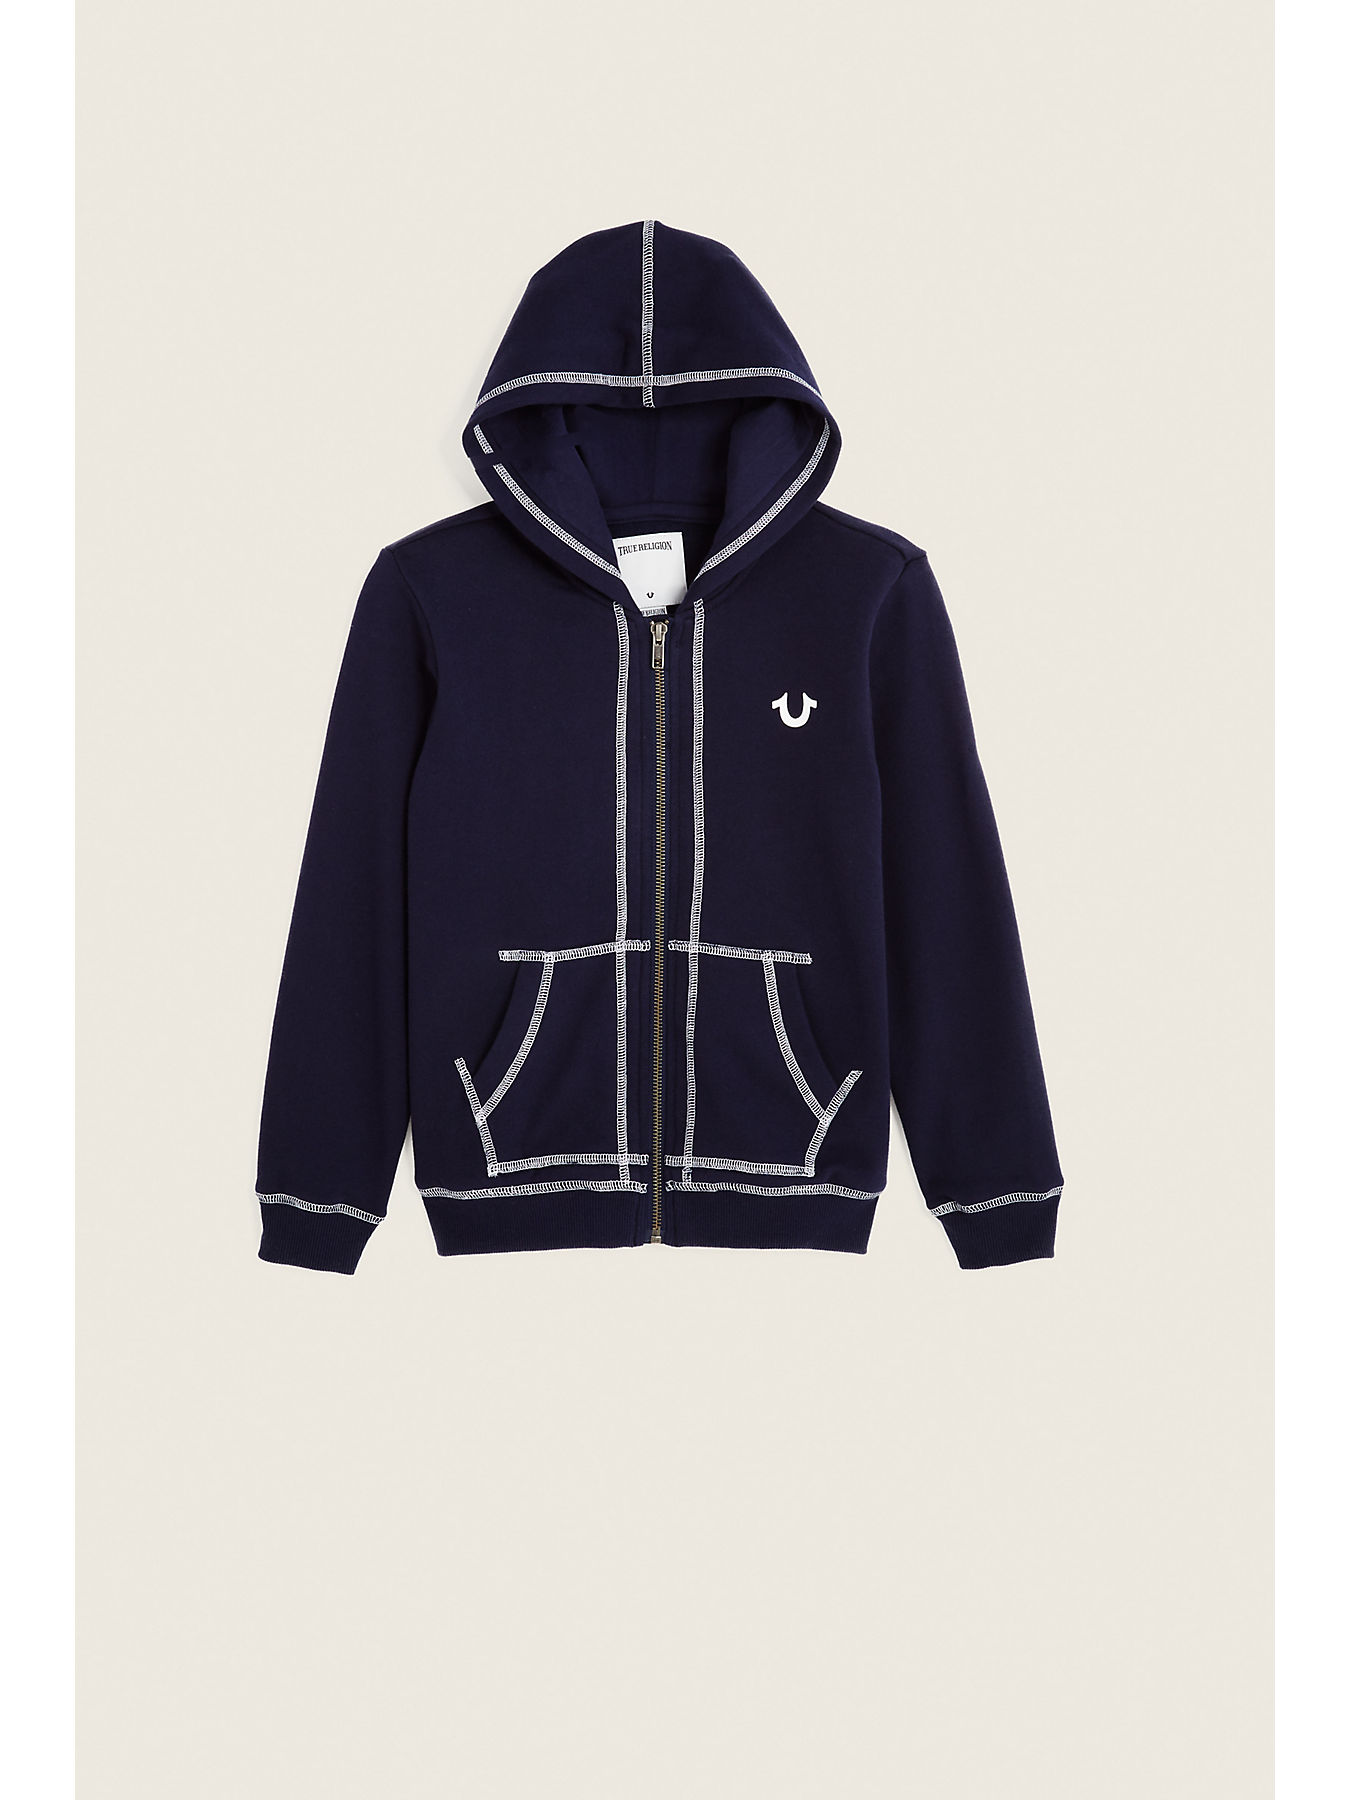 6af6fa033 FRENCH TERRY KIDS HOODIE - True Religion